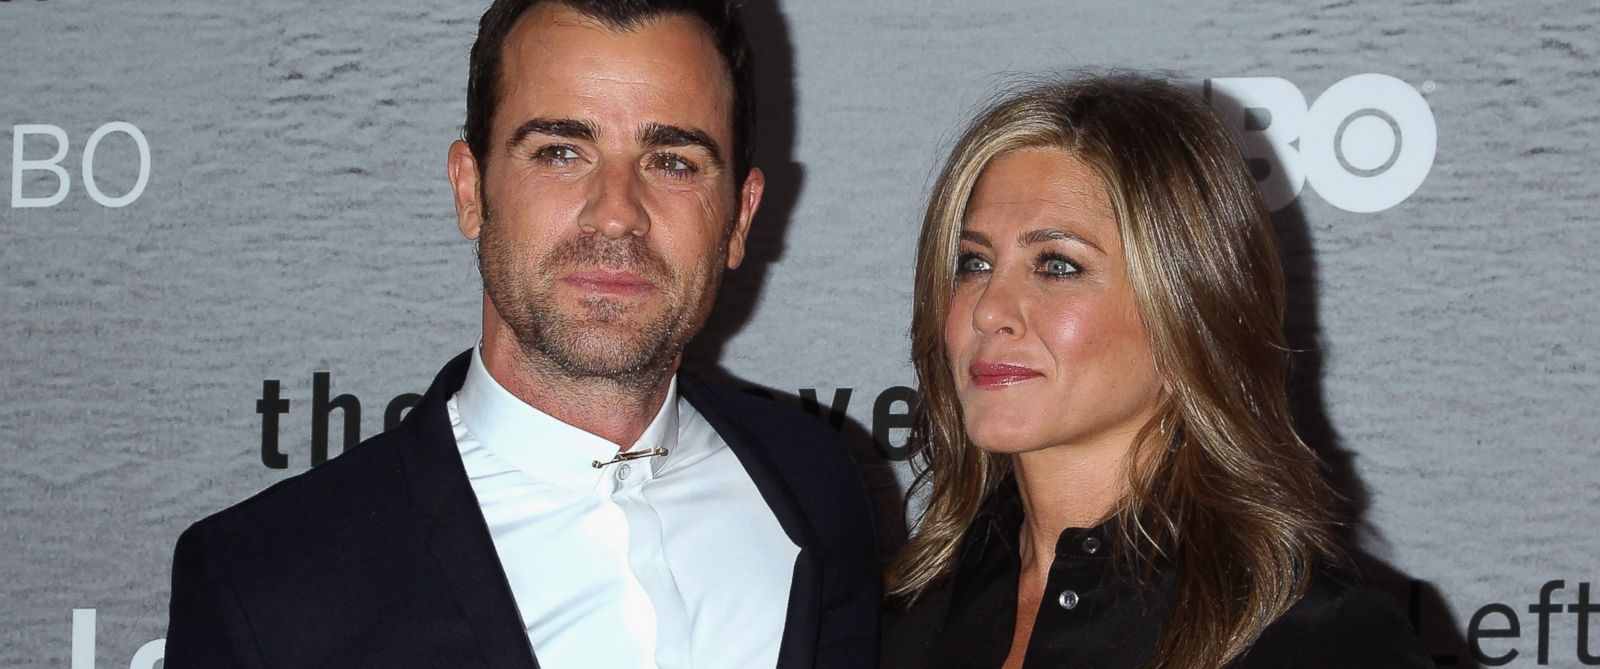 PHOTO: Justin Theroux, left, and Jennifer Aniston, right, are pictured on June 23, 2014 in New York City.